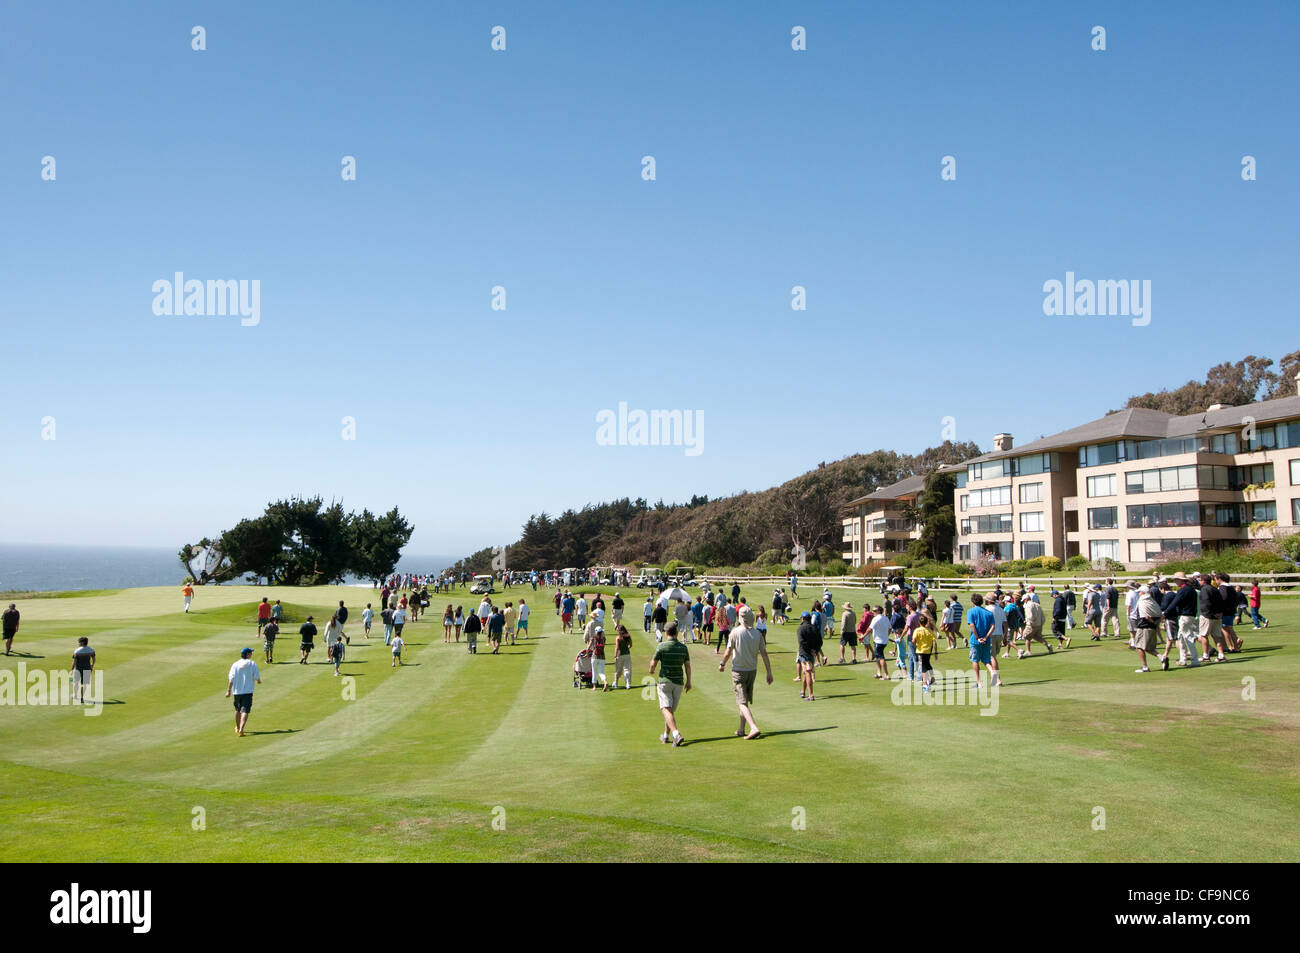 Spectators and golfers unknown. Championship golf. - Stock Image